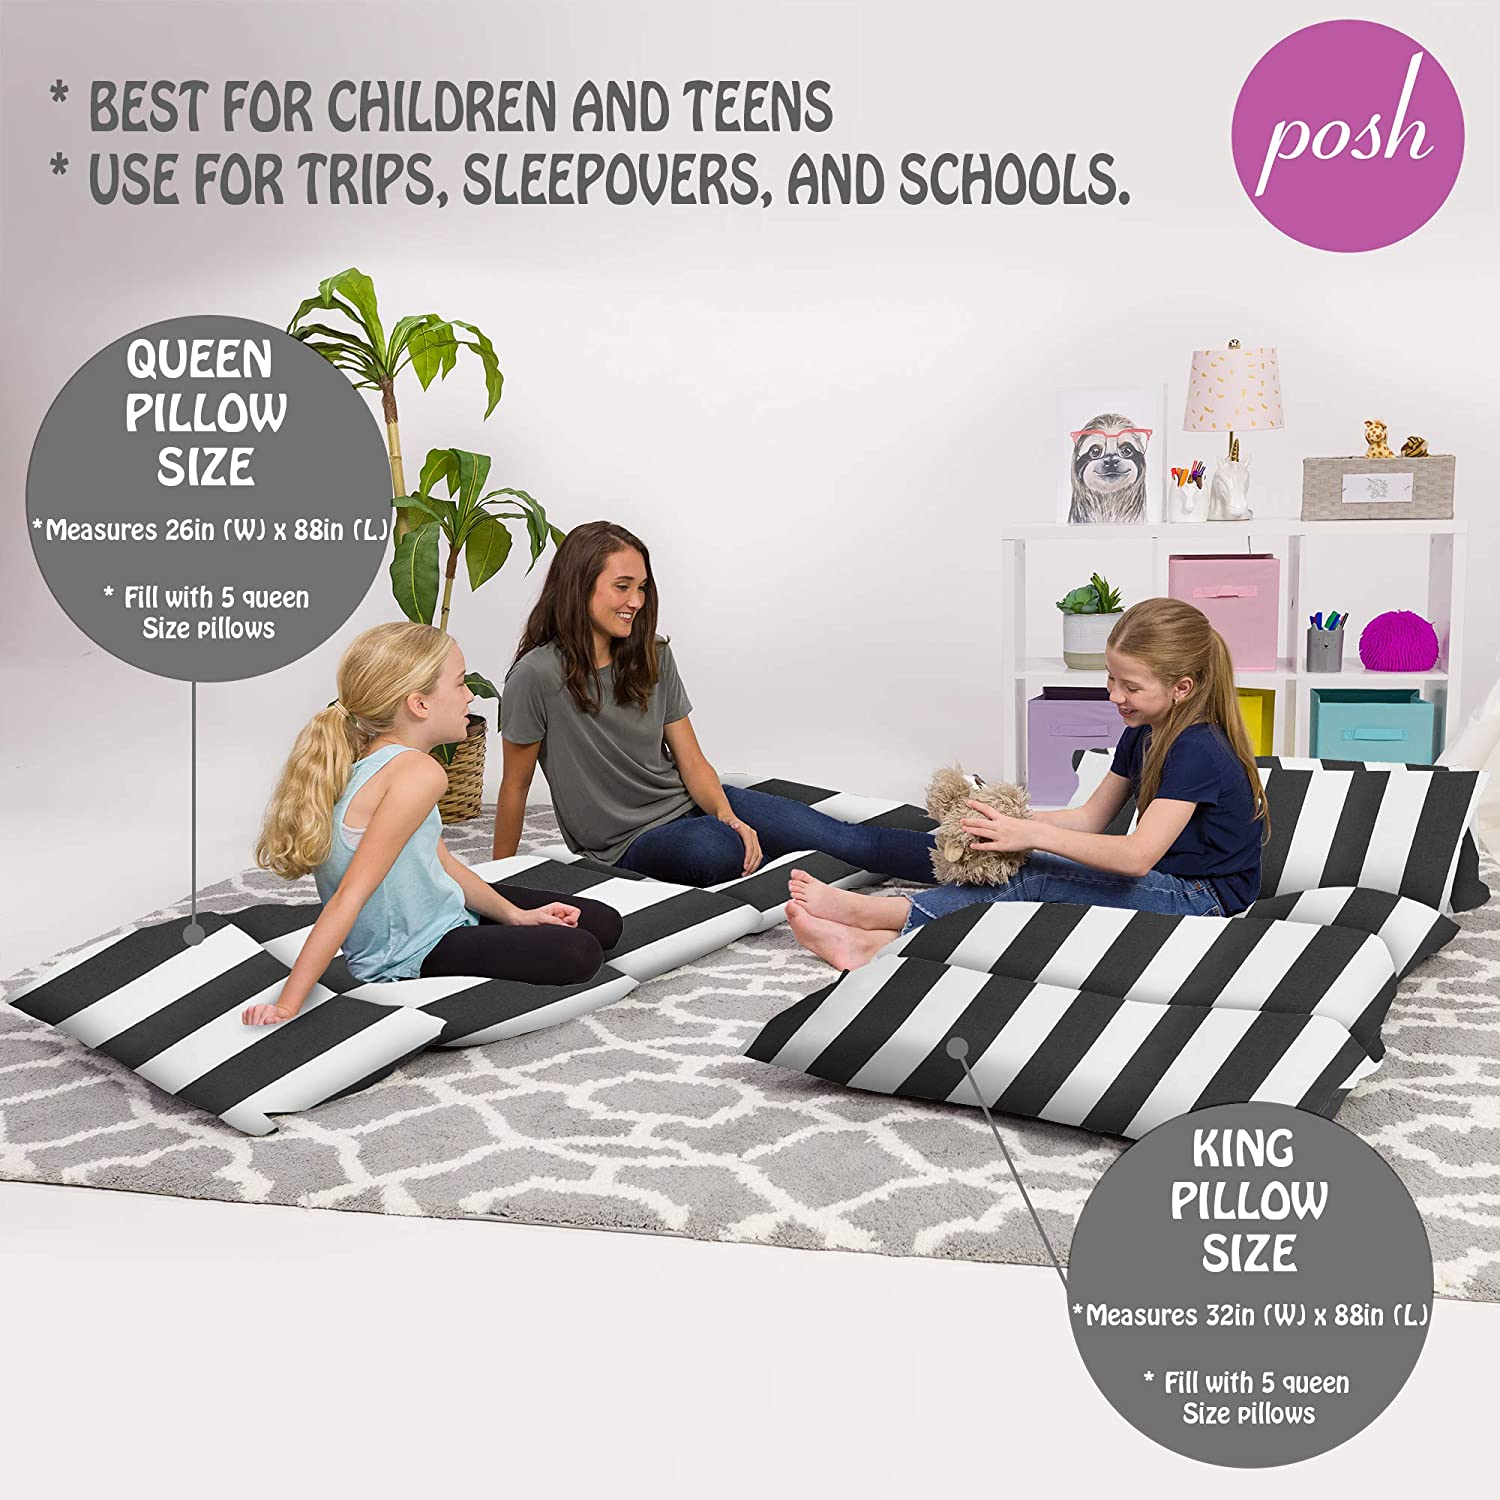 Kids Floor Pillow Cover - Gifts for Teenage Girls King Pillows NOT included King Pillow Size Premium Cushion and Lounger Covers for Pillows Cozy Soft Gray